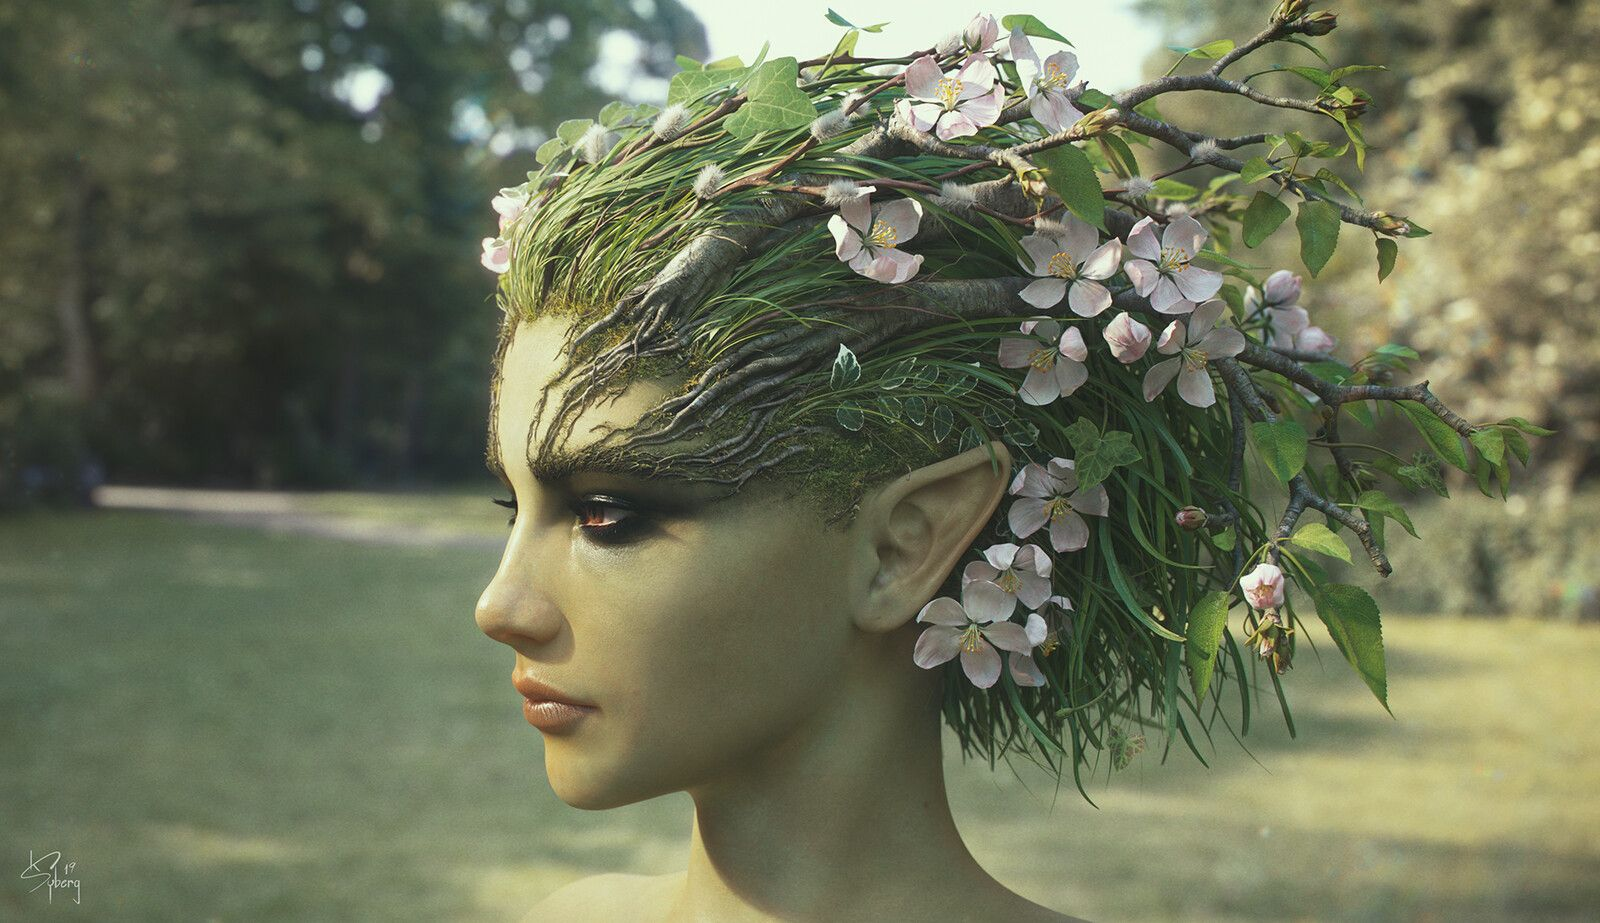 Photo of Dryad, Kim Syberg